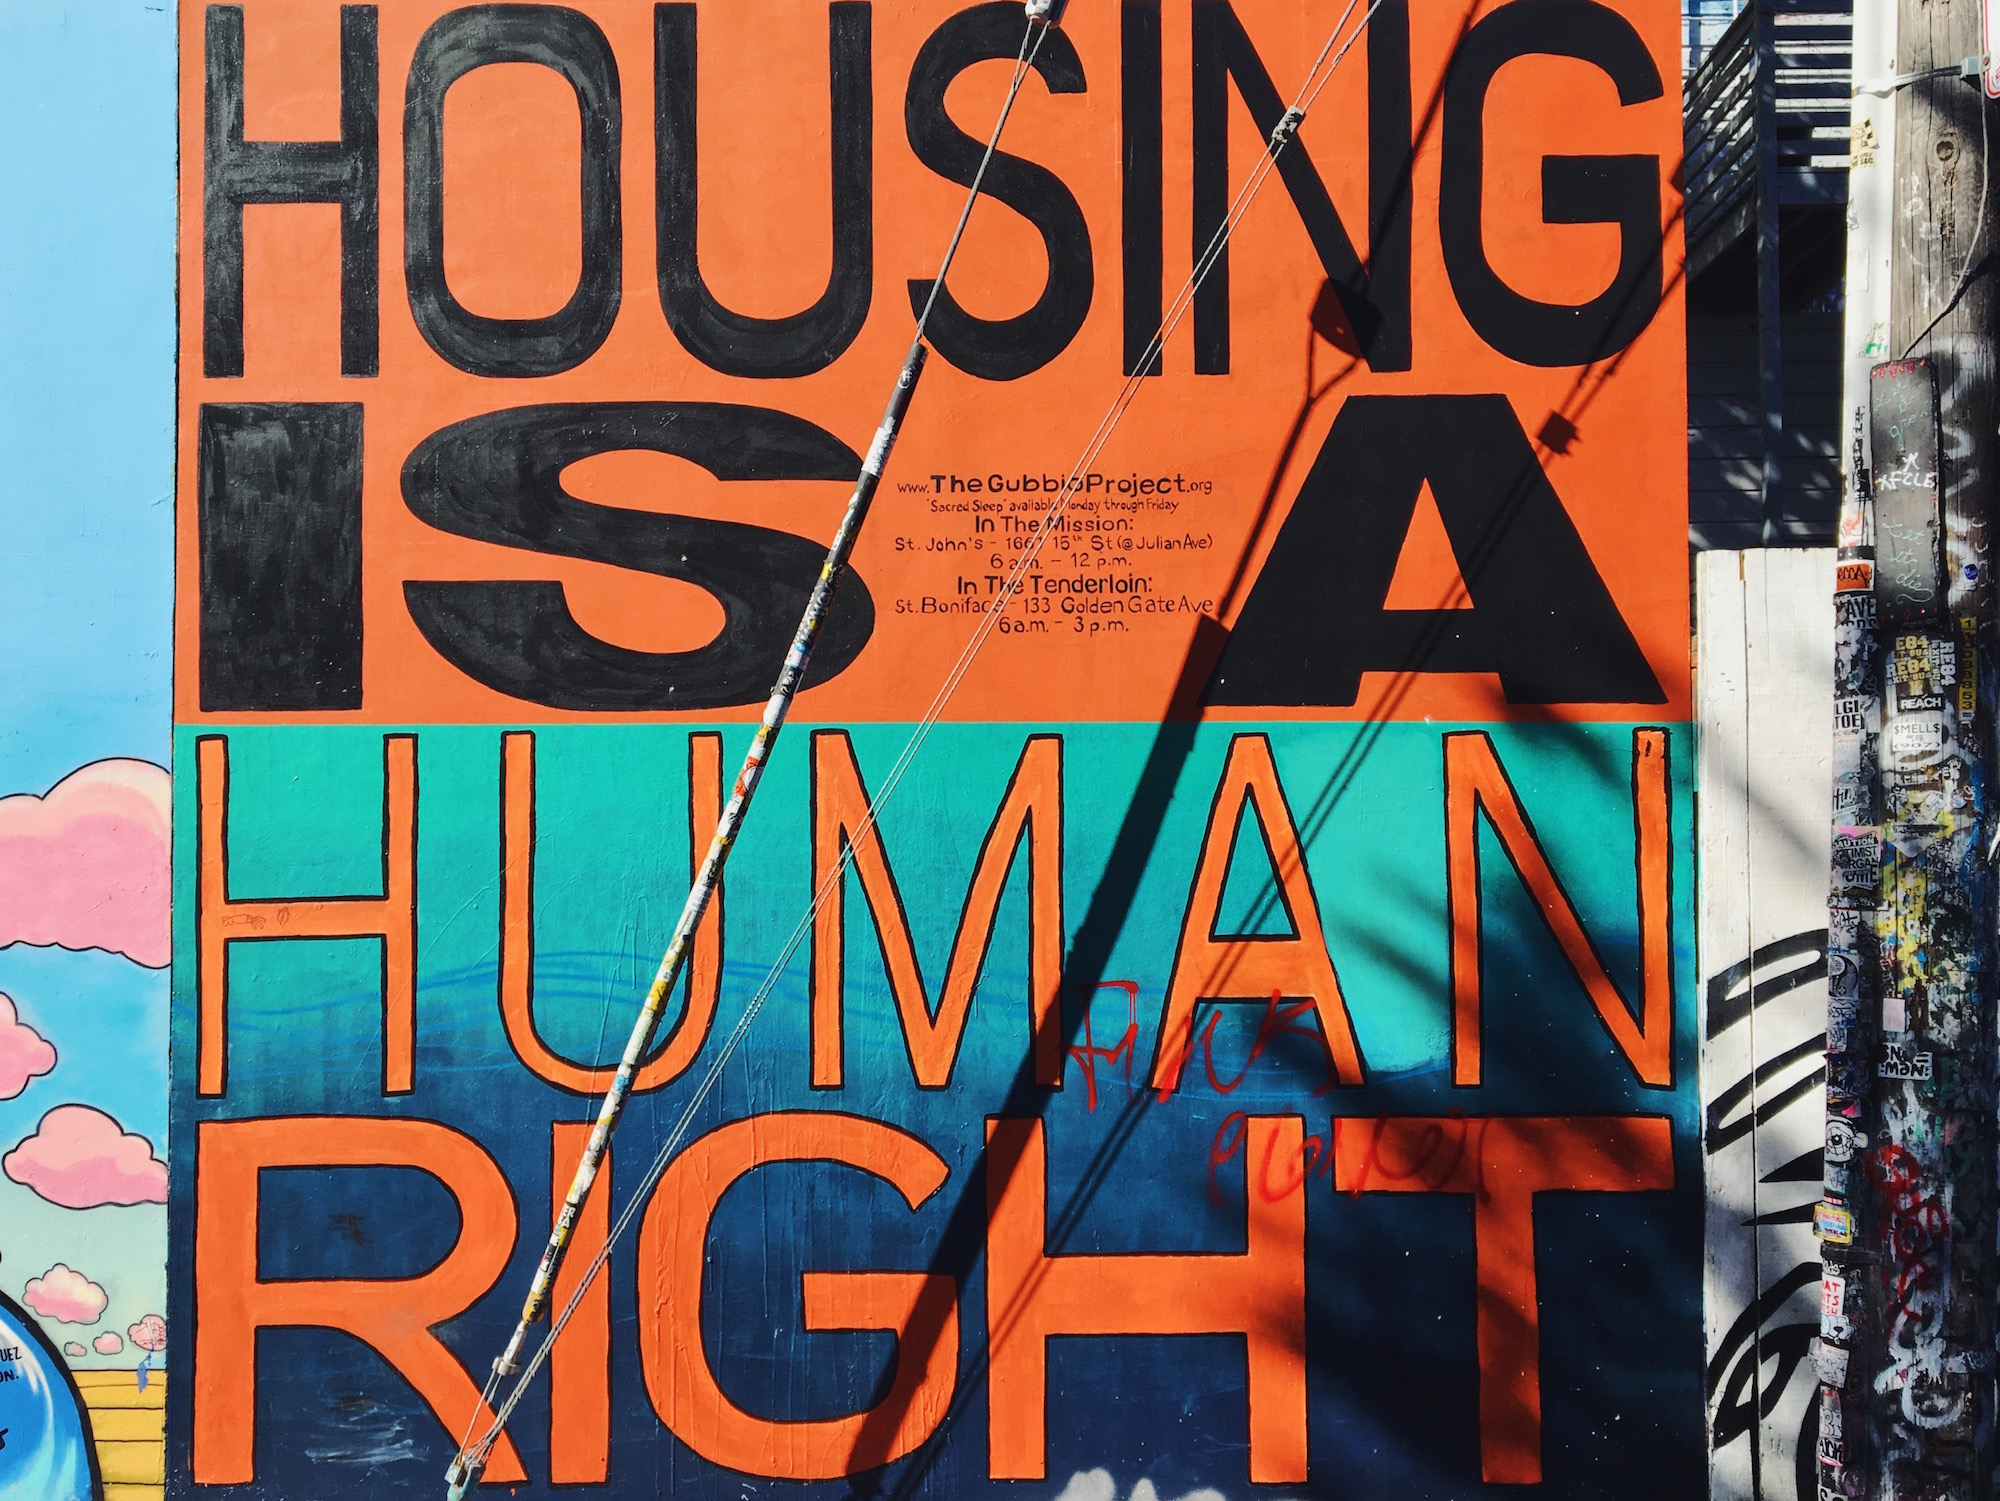 Clarion Alley - Murales nel quartiere Mission di San Francisco - Housing is a human right